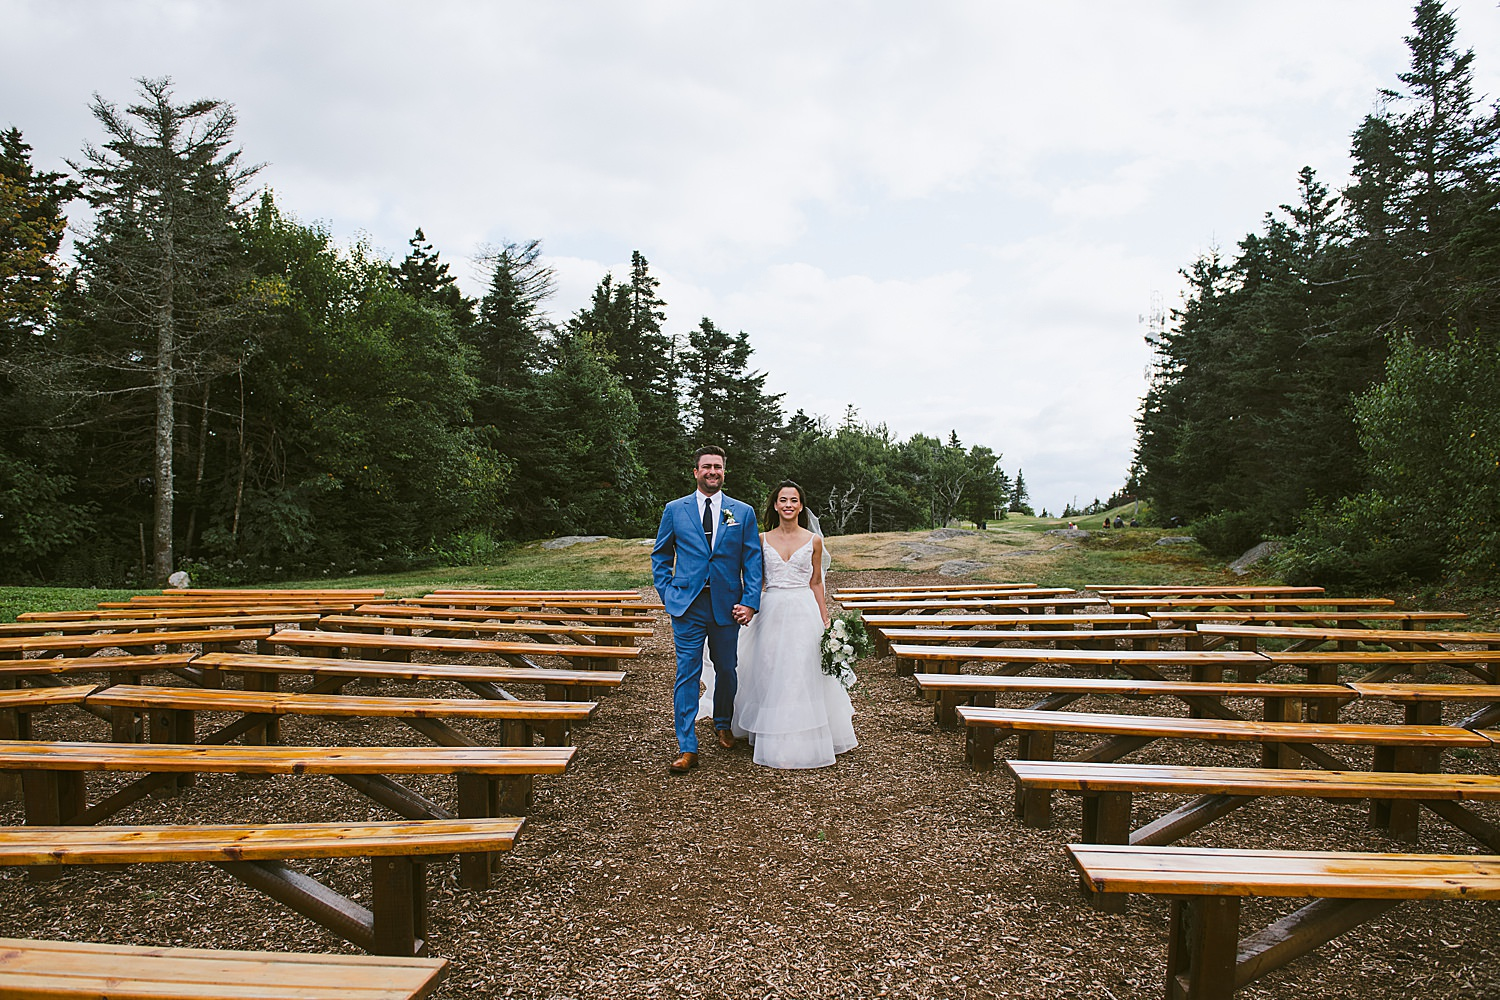 Ashley and Michael standing in the middle of their ceremony site